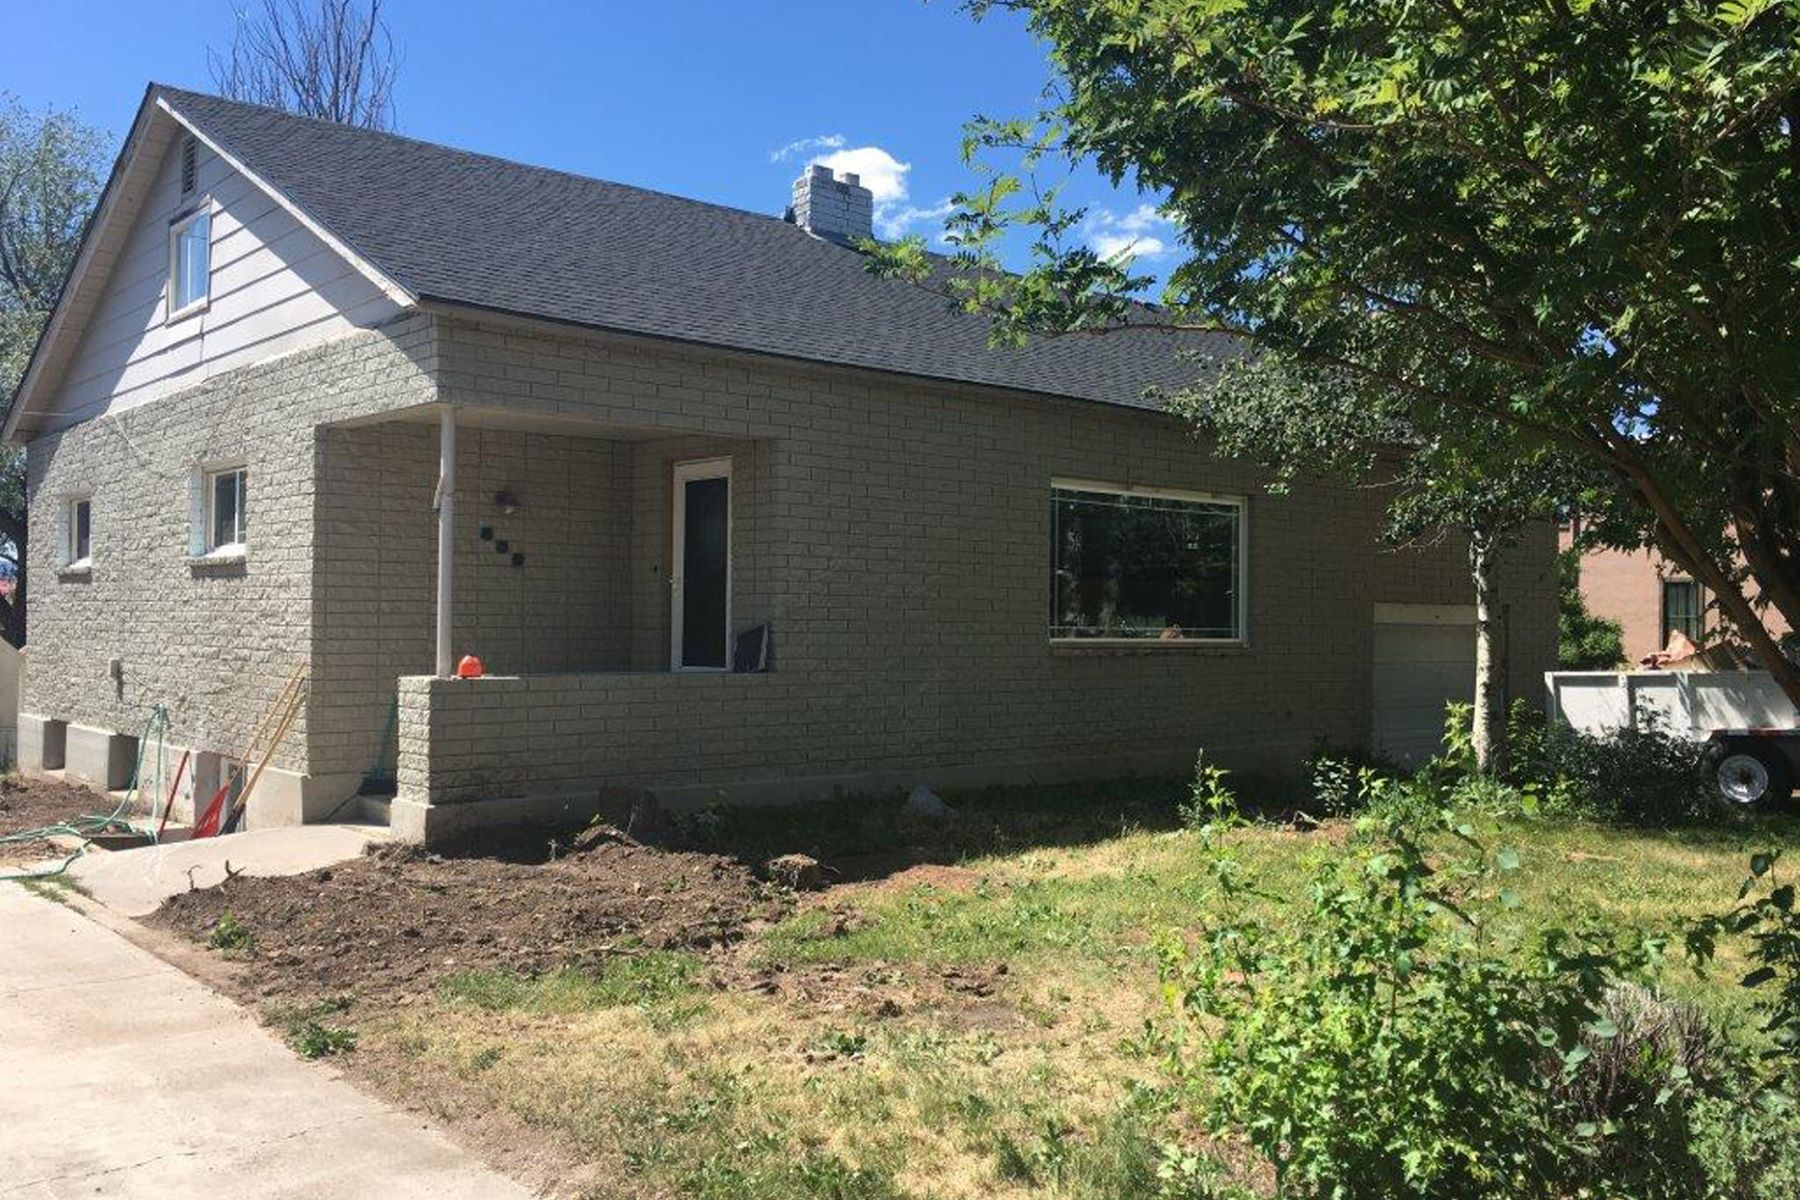 Casa Unifamiliar por un Venta en Income Potential Property 352 N 1st East Driggs, Idaho 83422 Estados Unidos